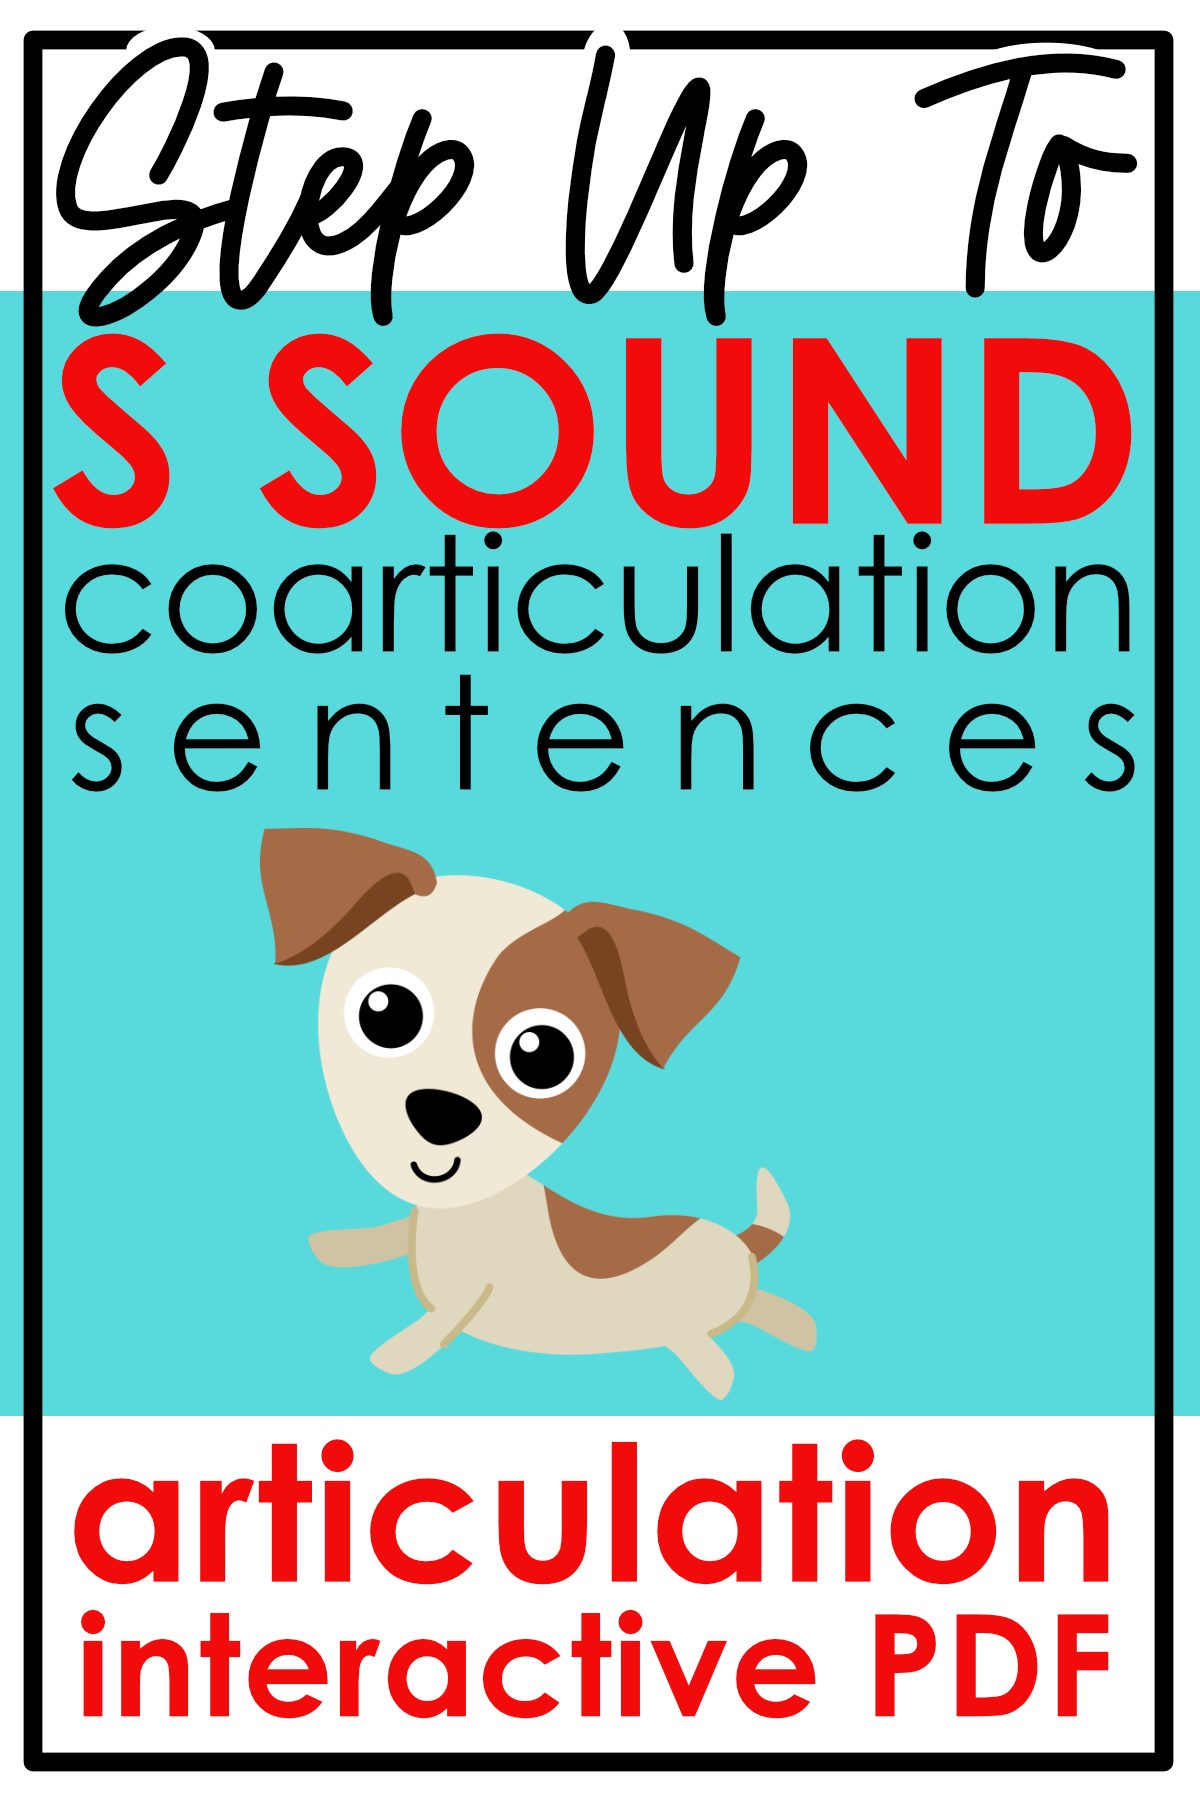 S Sound Sentences With Coarticulation